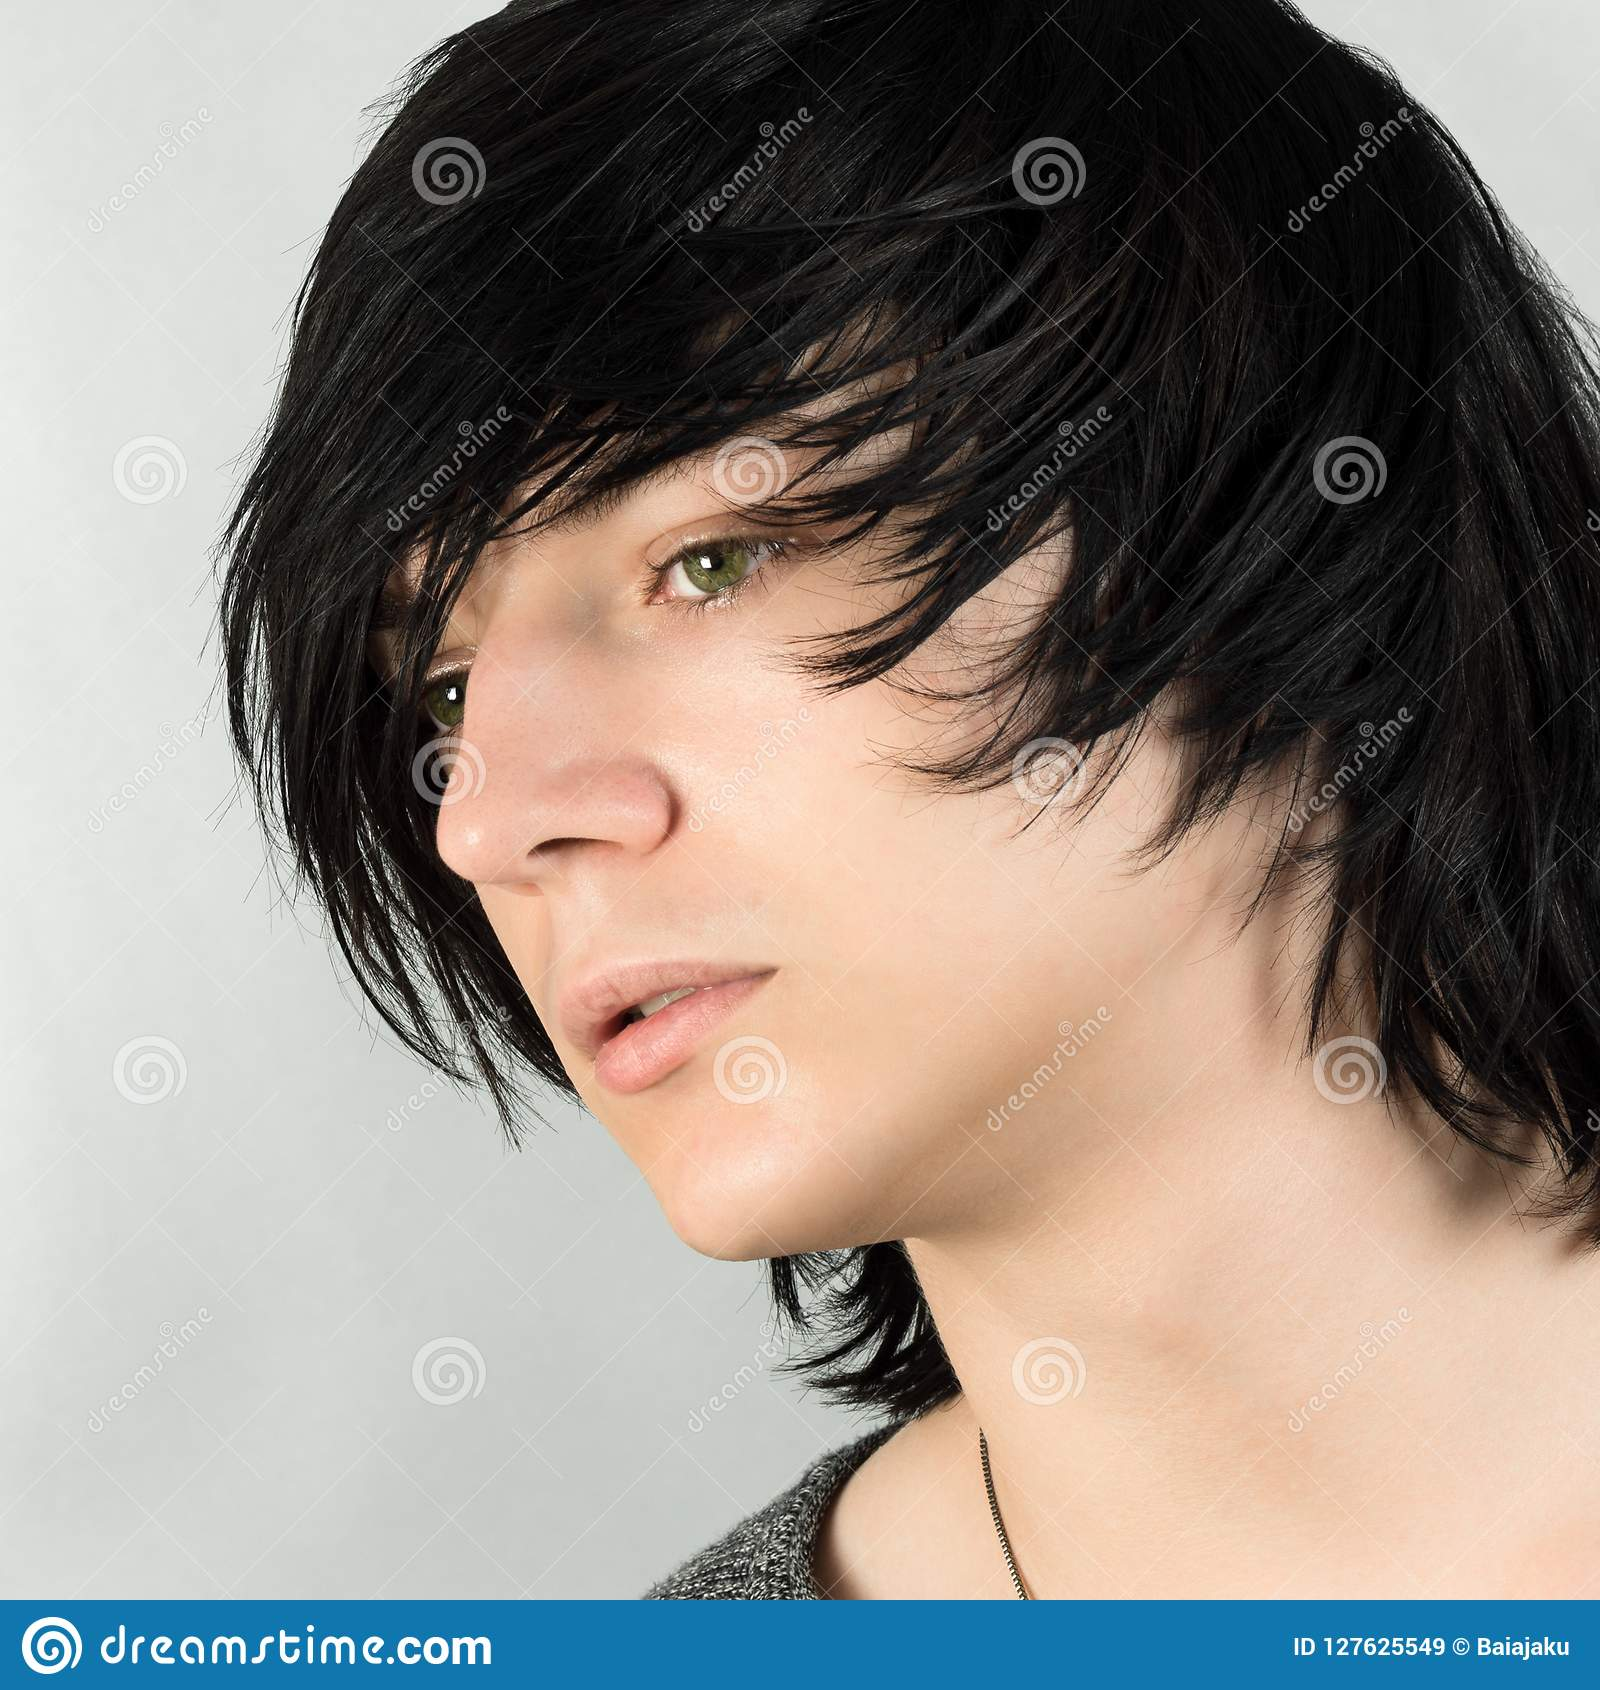 Emo Hairstyle For Boys Stock Image Image Of Handsome 127625549